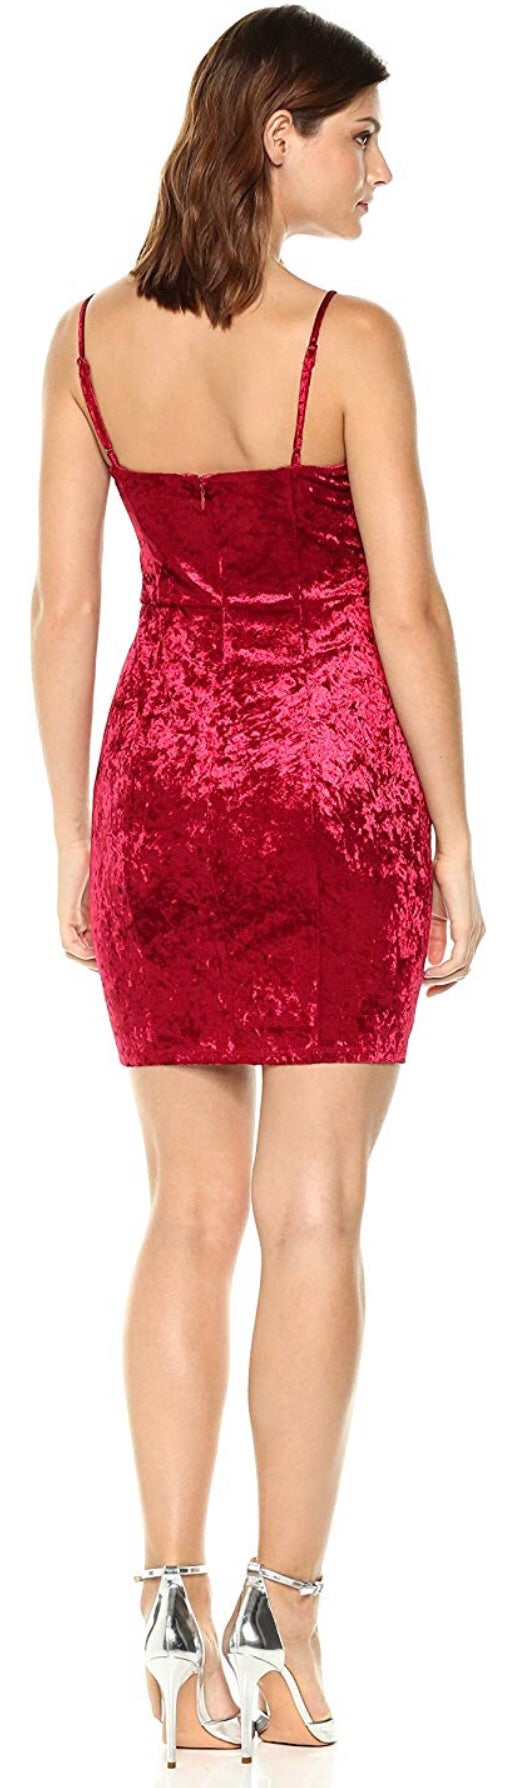 Women's Sleeveless Gennifer Velvet Dress